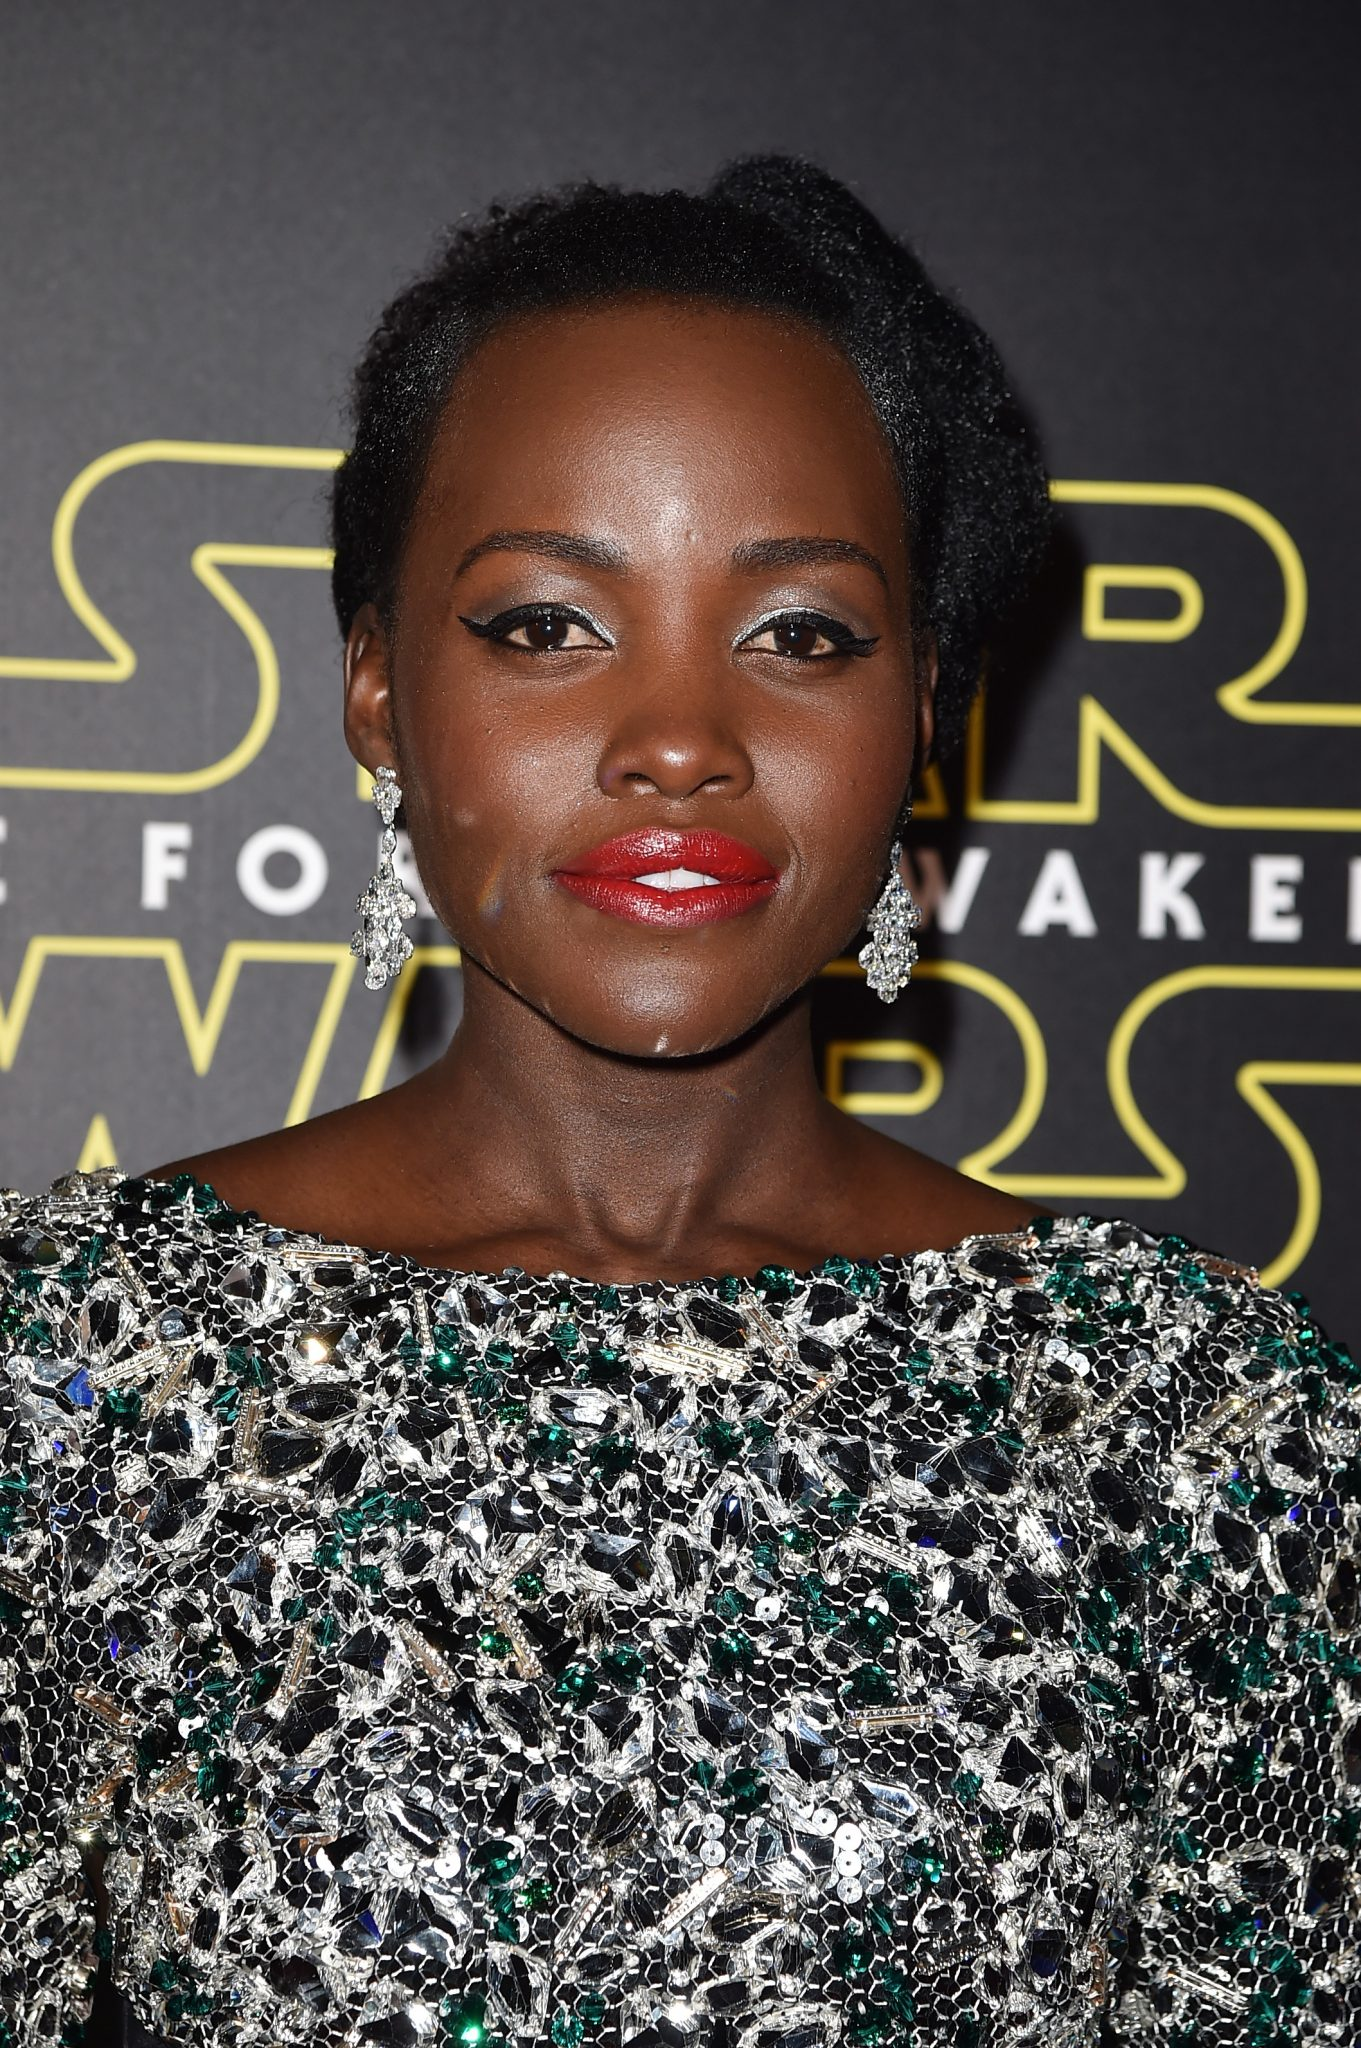 Get The Look: Lupita Nyong'o The Star Wars: Episode VII – The Force Awakens Los Angeles Premiere